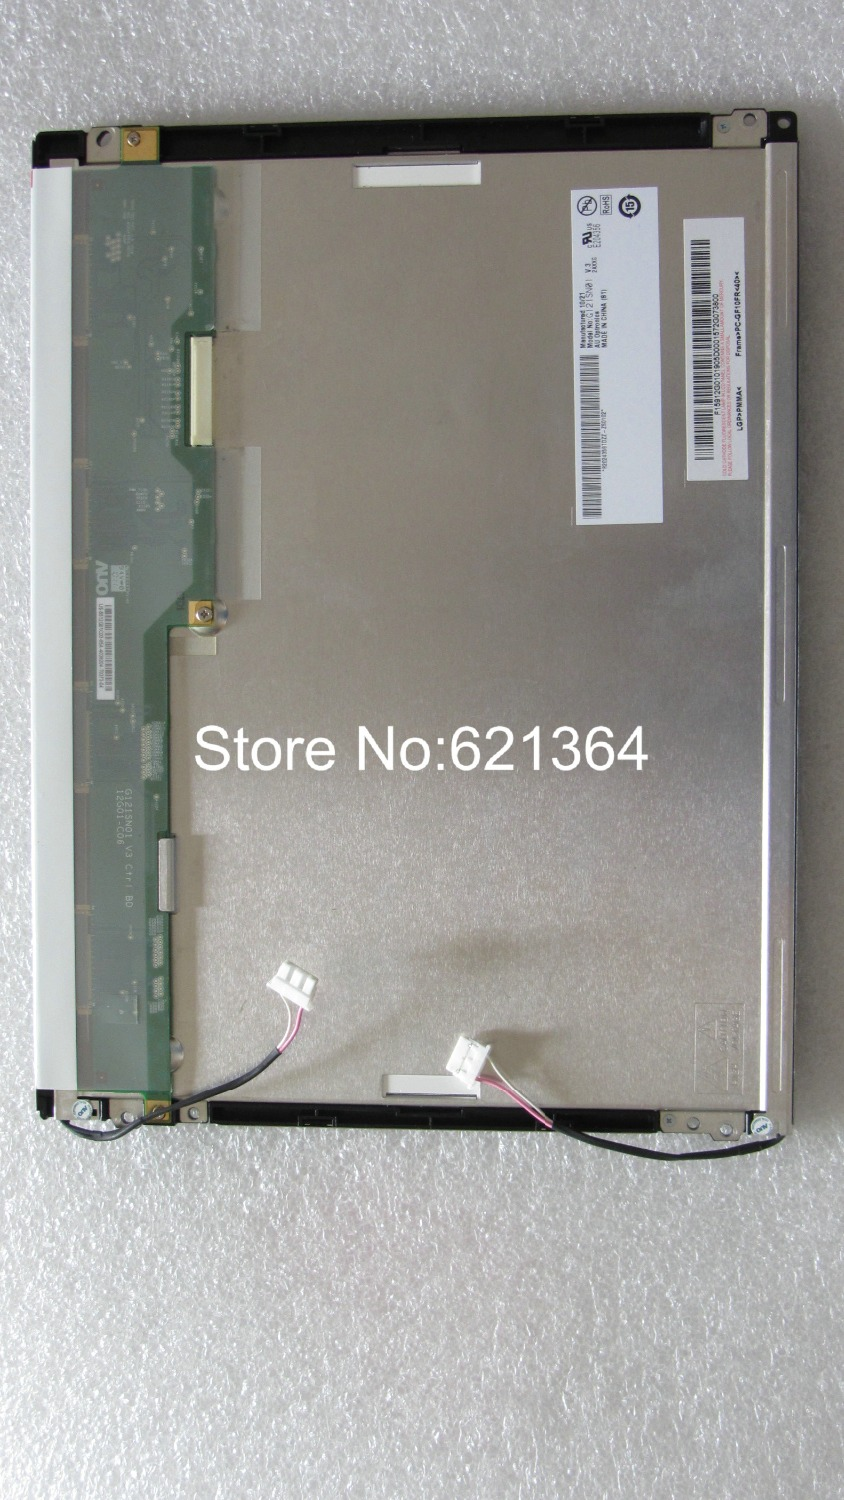 best price and quality  G121SN01  V.3   industrial LCD Displaybest price and quality  G121SN01  V.3   industrial LCD Display